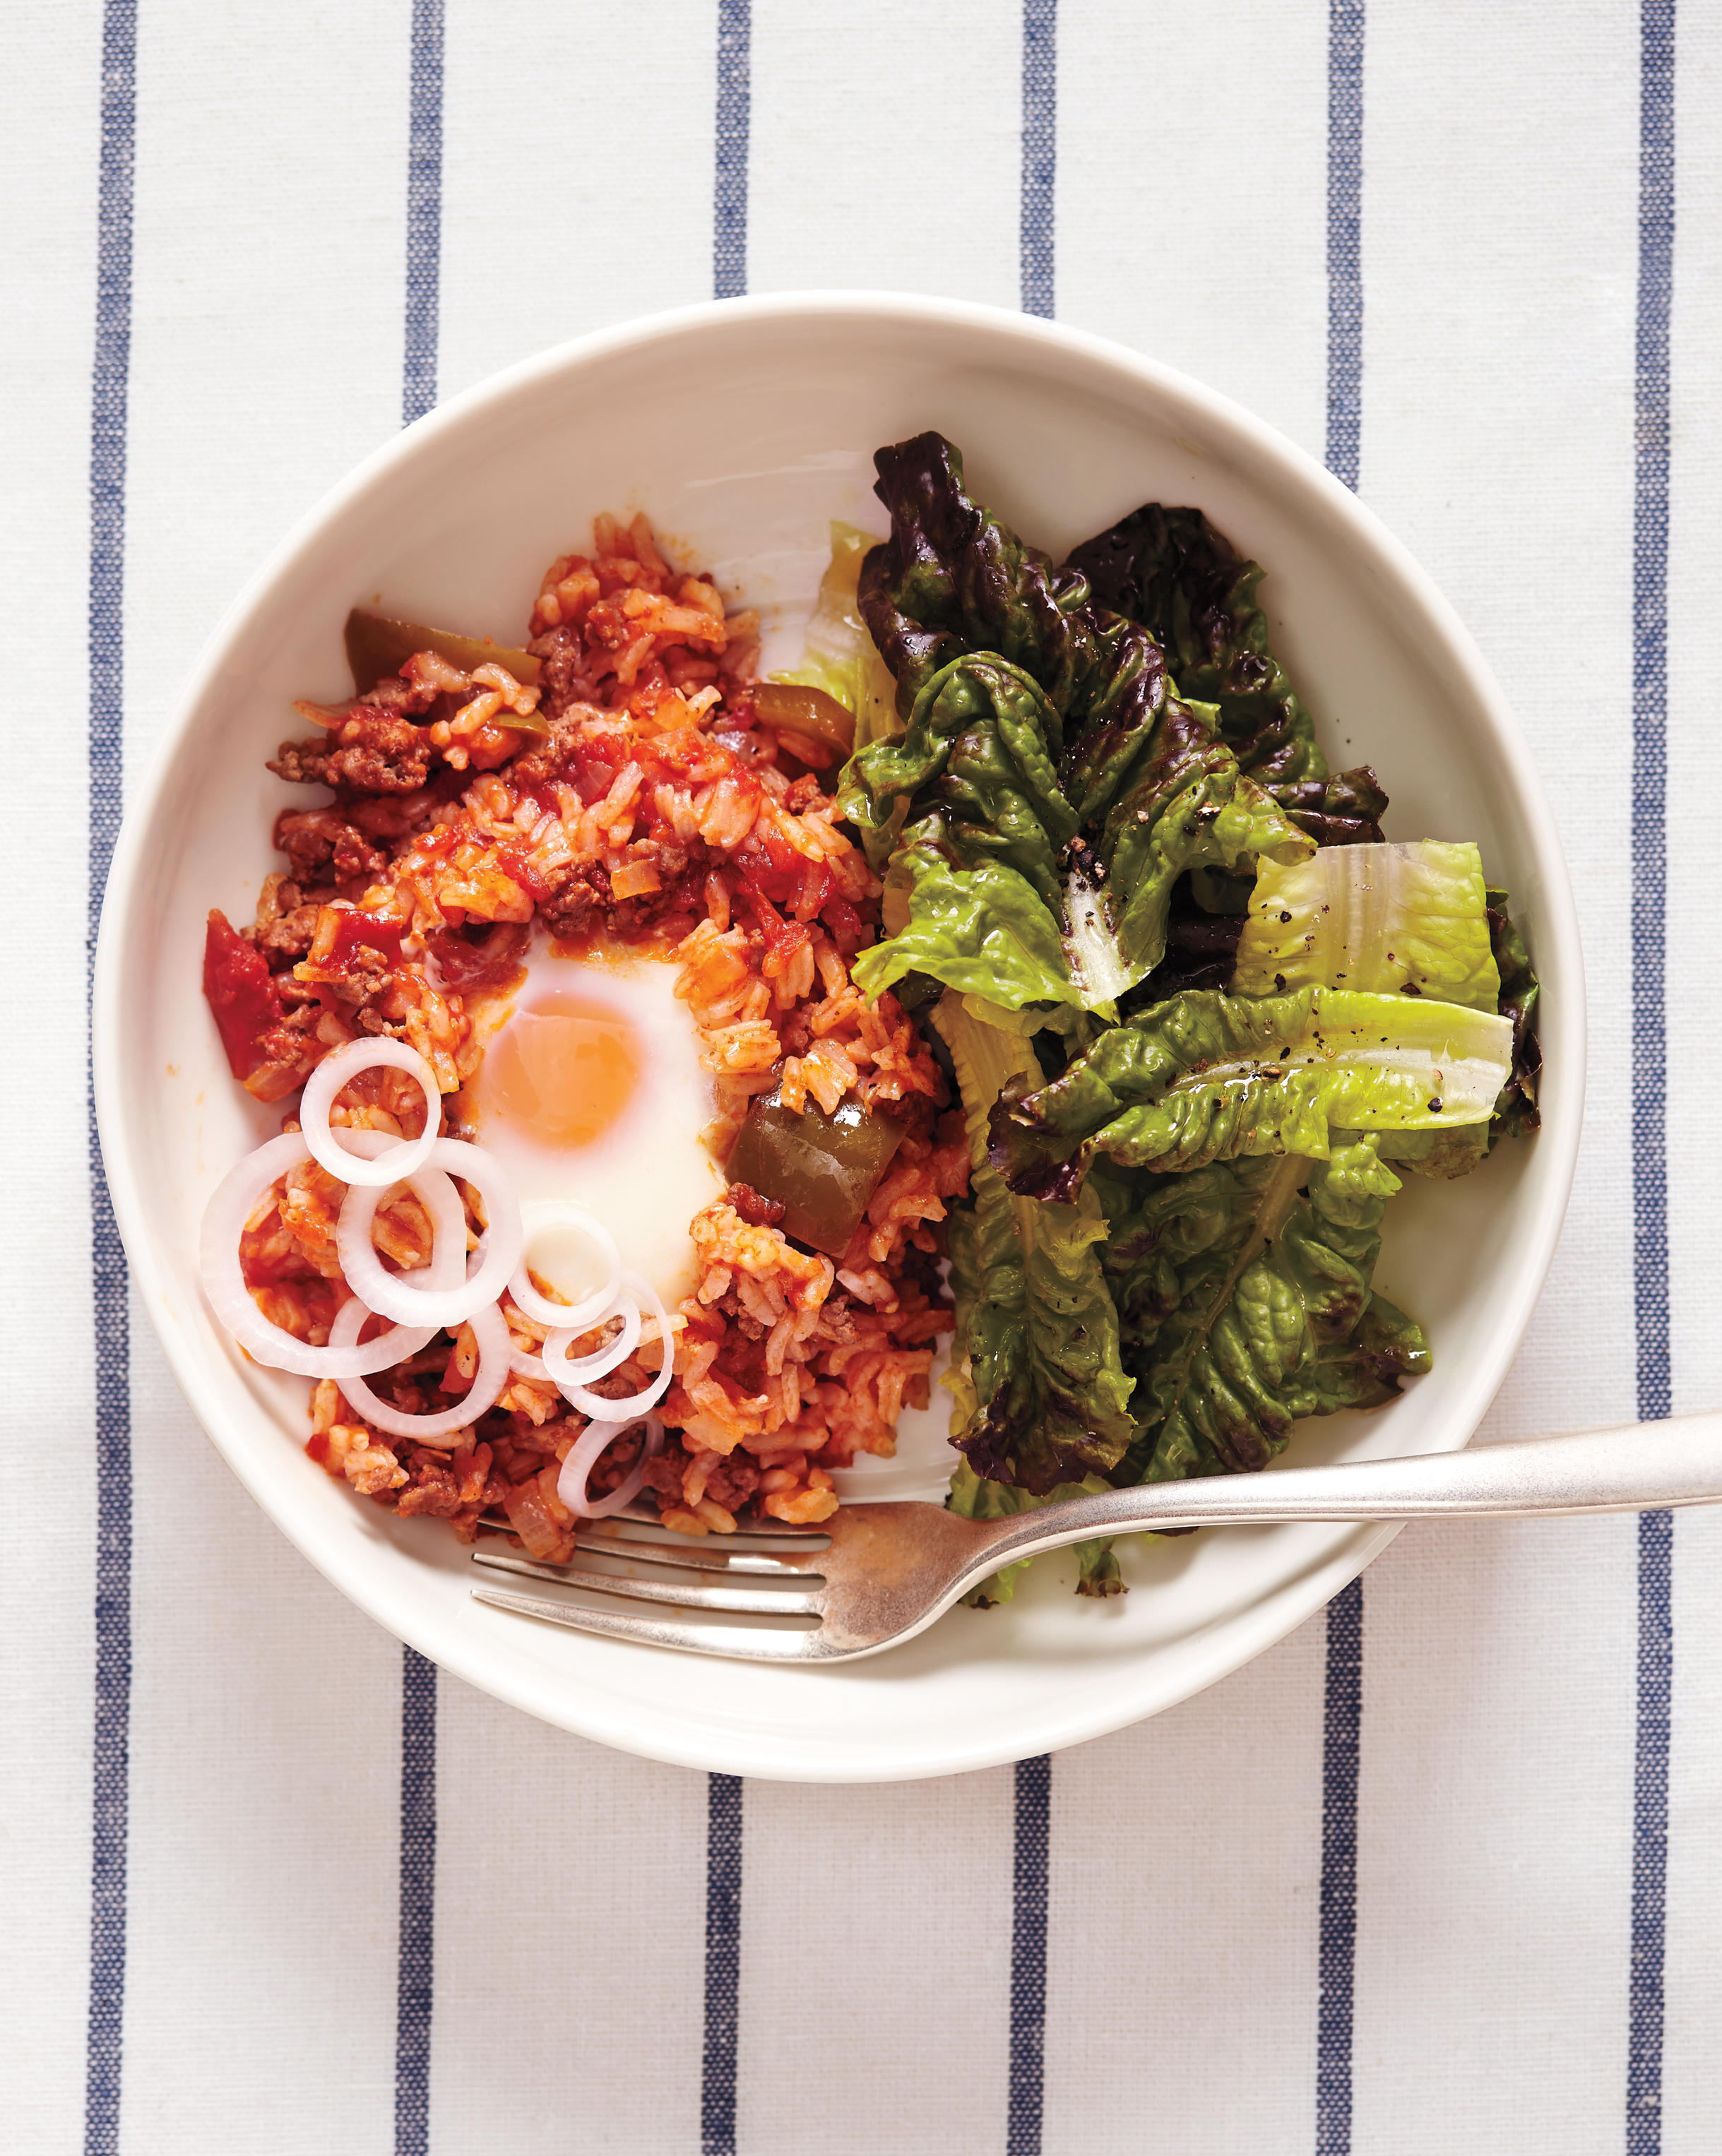 Ground Chuck: Spanish Rice with Ground Beef and Eggs